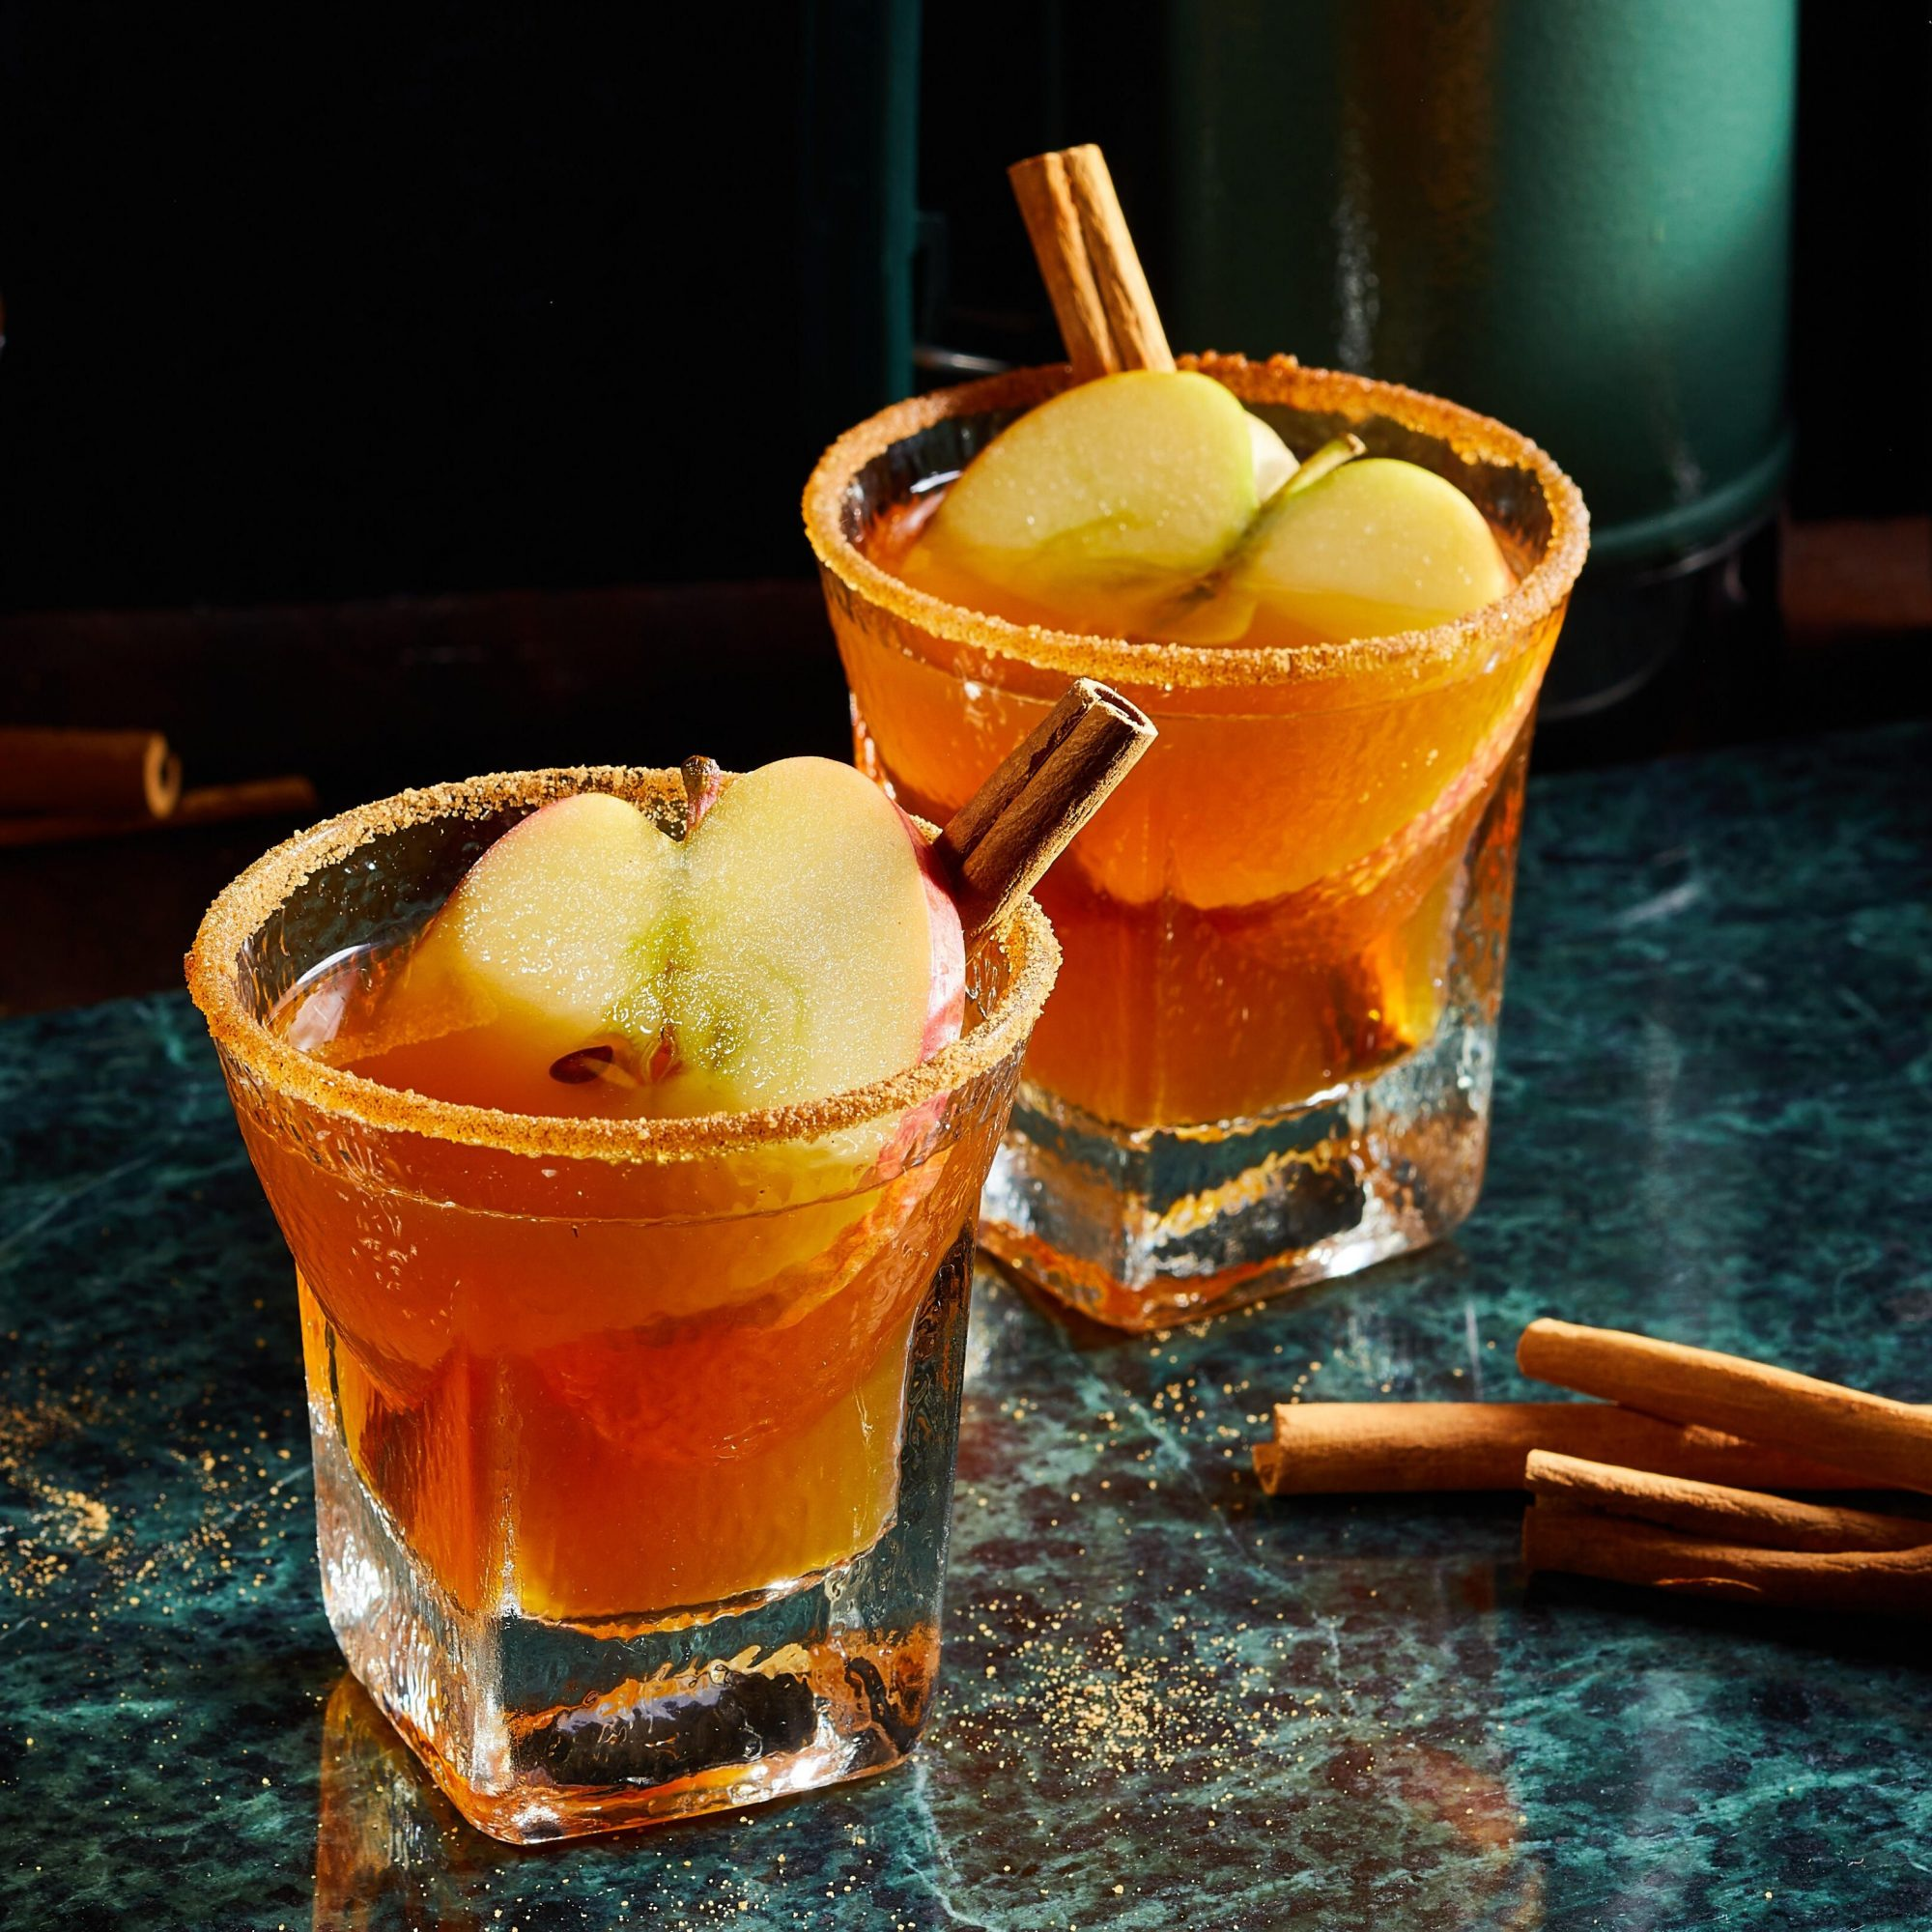 two whisky glasses rimmed with cinnamon sugar, filled with Cider-Bourbon Thermos Cocktail recipe, and garnished with cinnamon sticks and apple slices